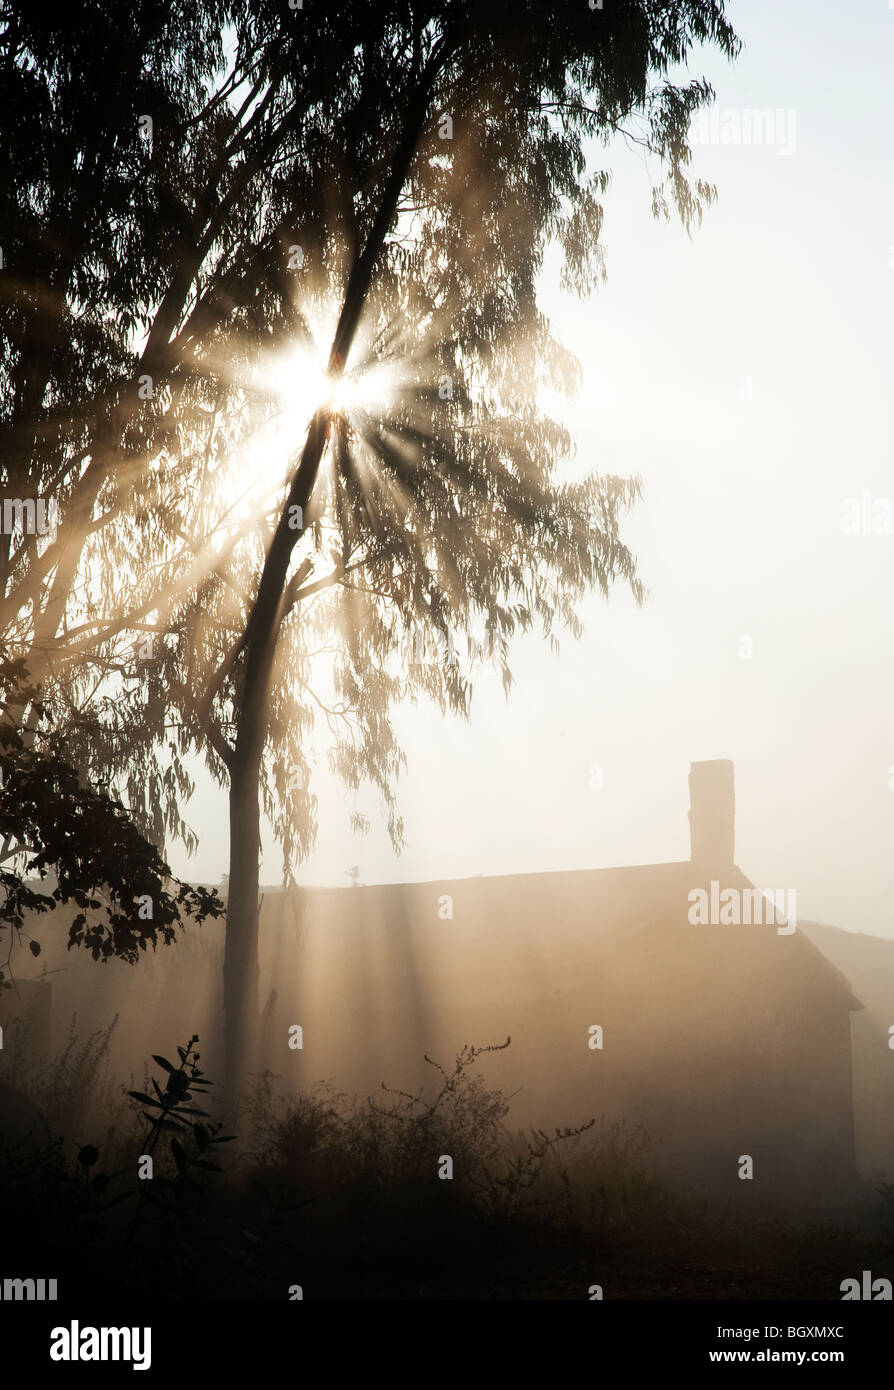 Sunburst through trees above a barn in India. Silhouette - Stock Image